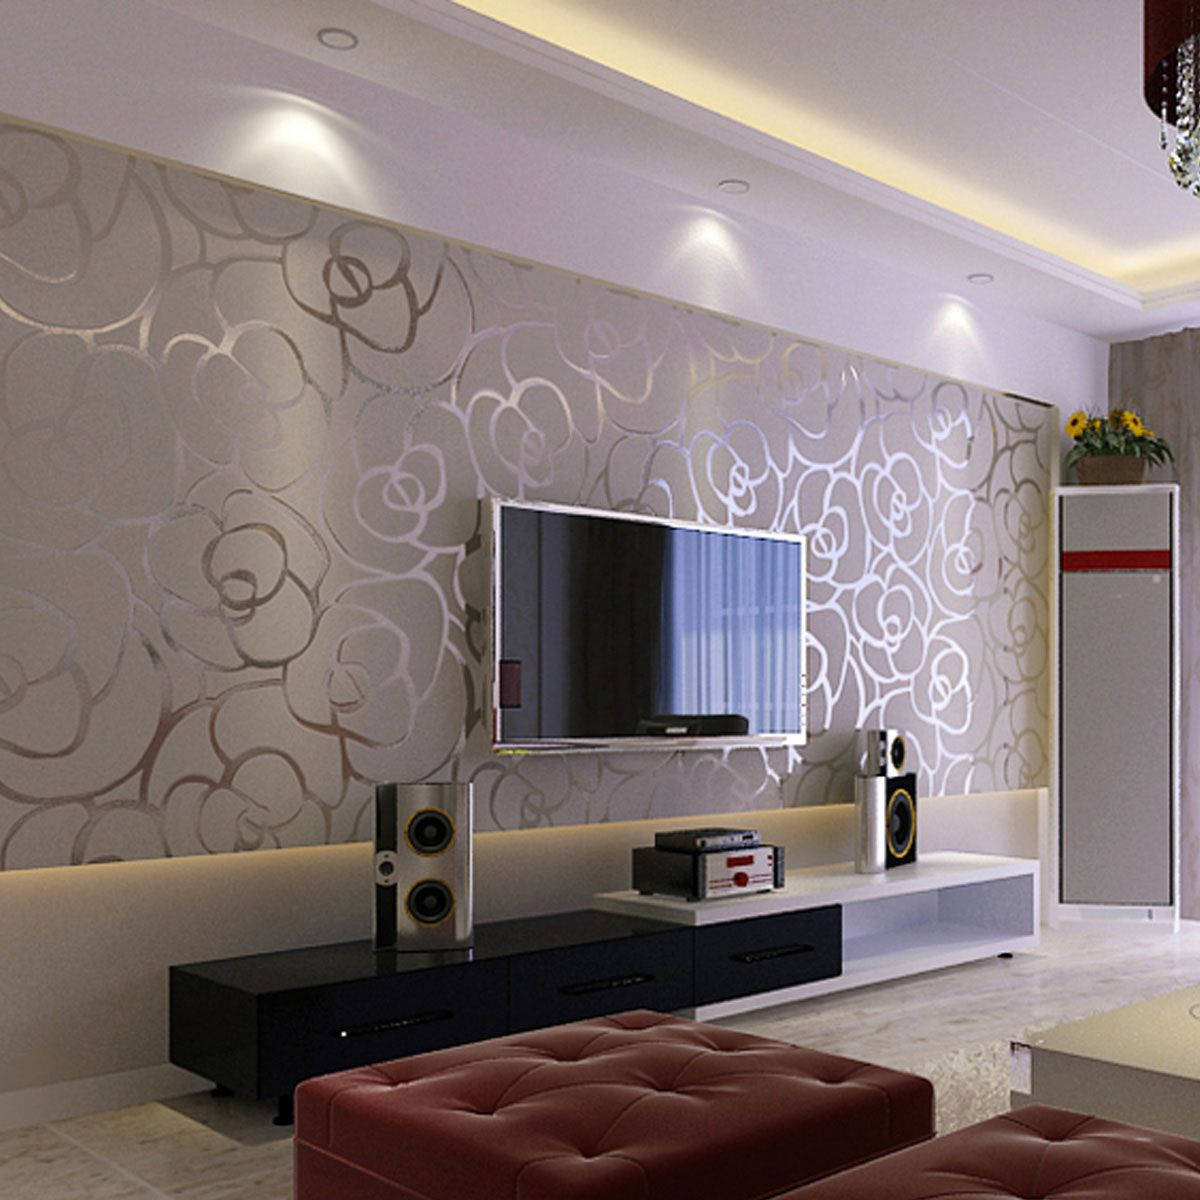 Modern Wallpaper Designs Modern Wallpaper Living Room Modern Wallpaper Designs Wallpaper Living Room